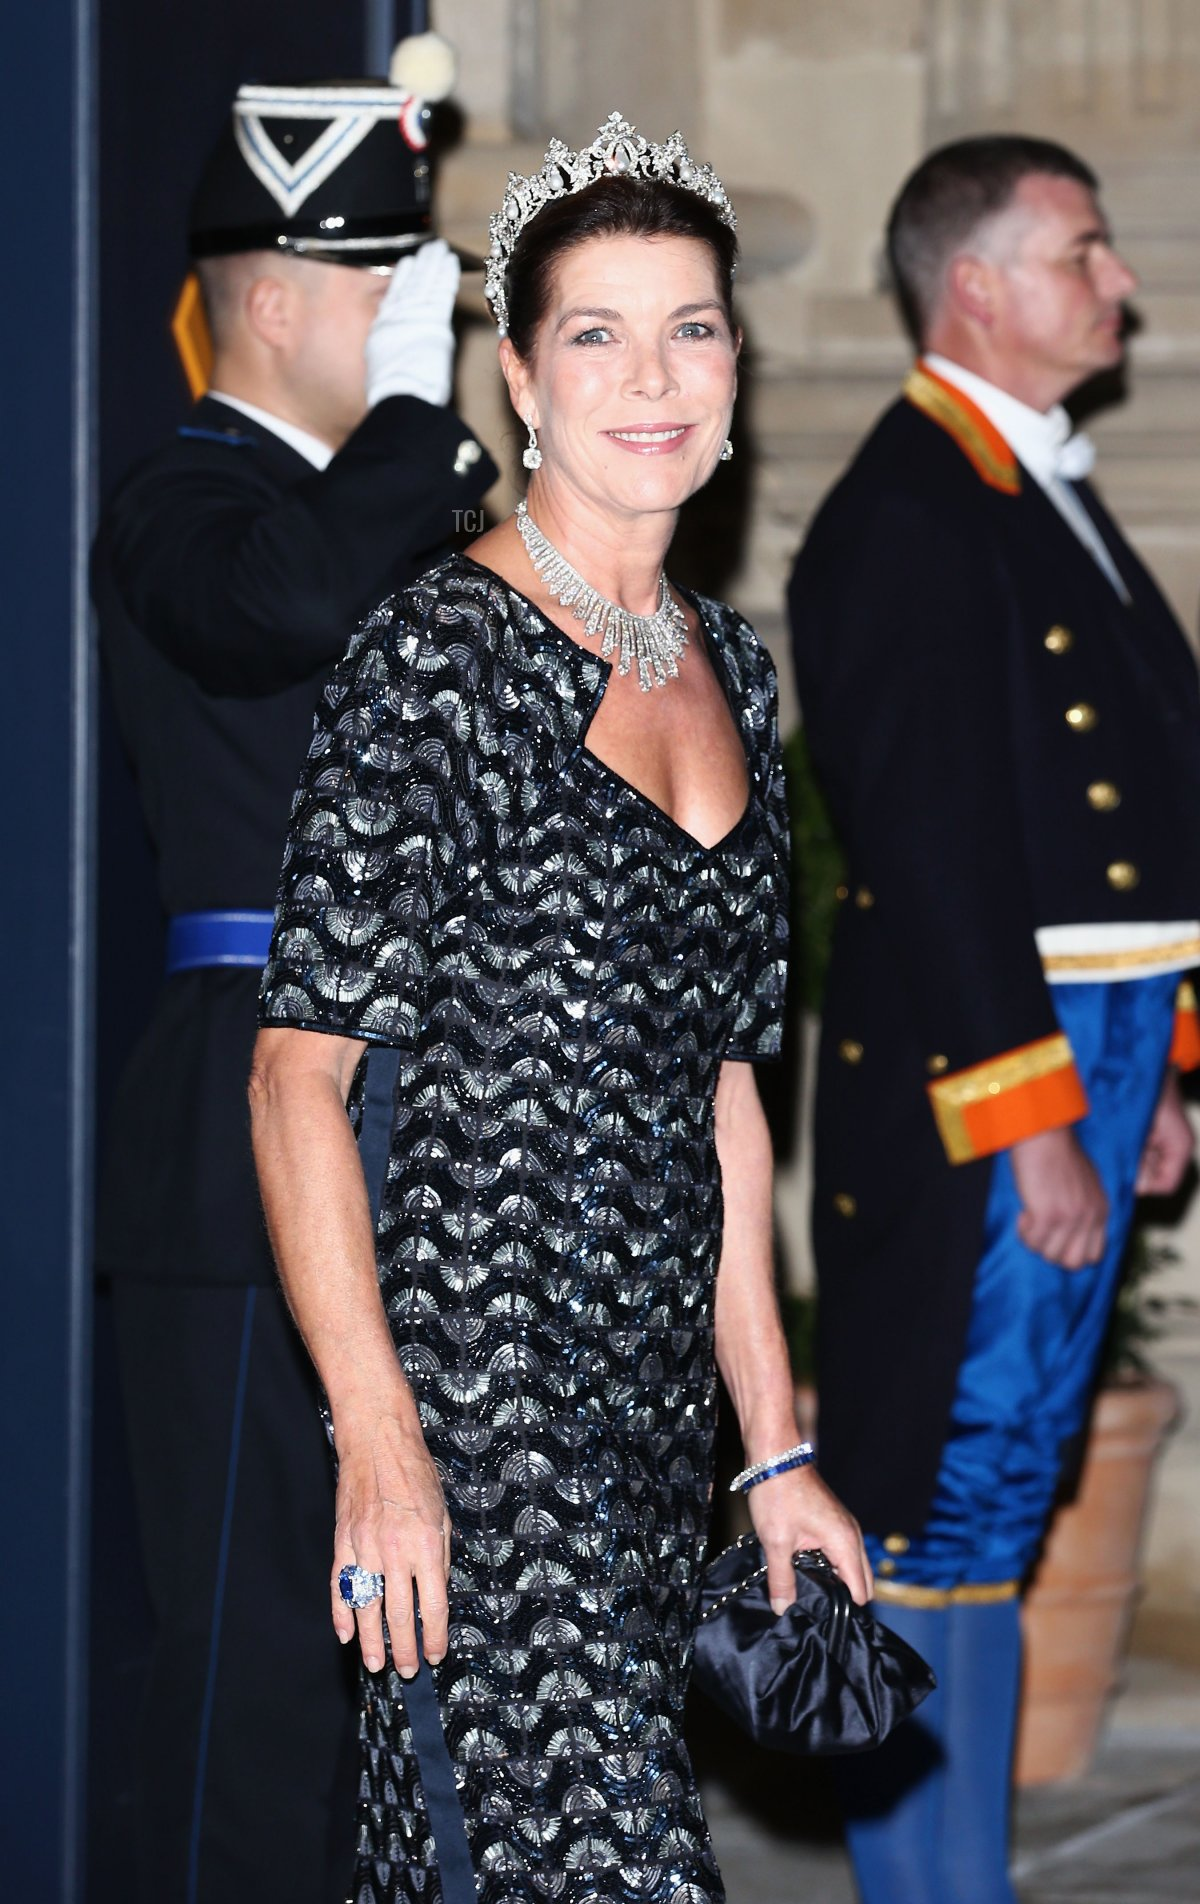 Princess Caroline of Hanover attends the Gala dinner for the wedding of Prince Guillaume Of Luxembourg and Stephanie de Lannoy at the Grand-ducal Palace on October 19, 2012 in Luxembourg, Luxembourg. The 30-year-old hereditary Grand Duke of Luxembourg is the last hereditary Prince in Europe to get married, marrying his 28-year old Belgian Countess bride in a lavish 2-day ceremony